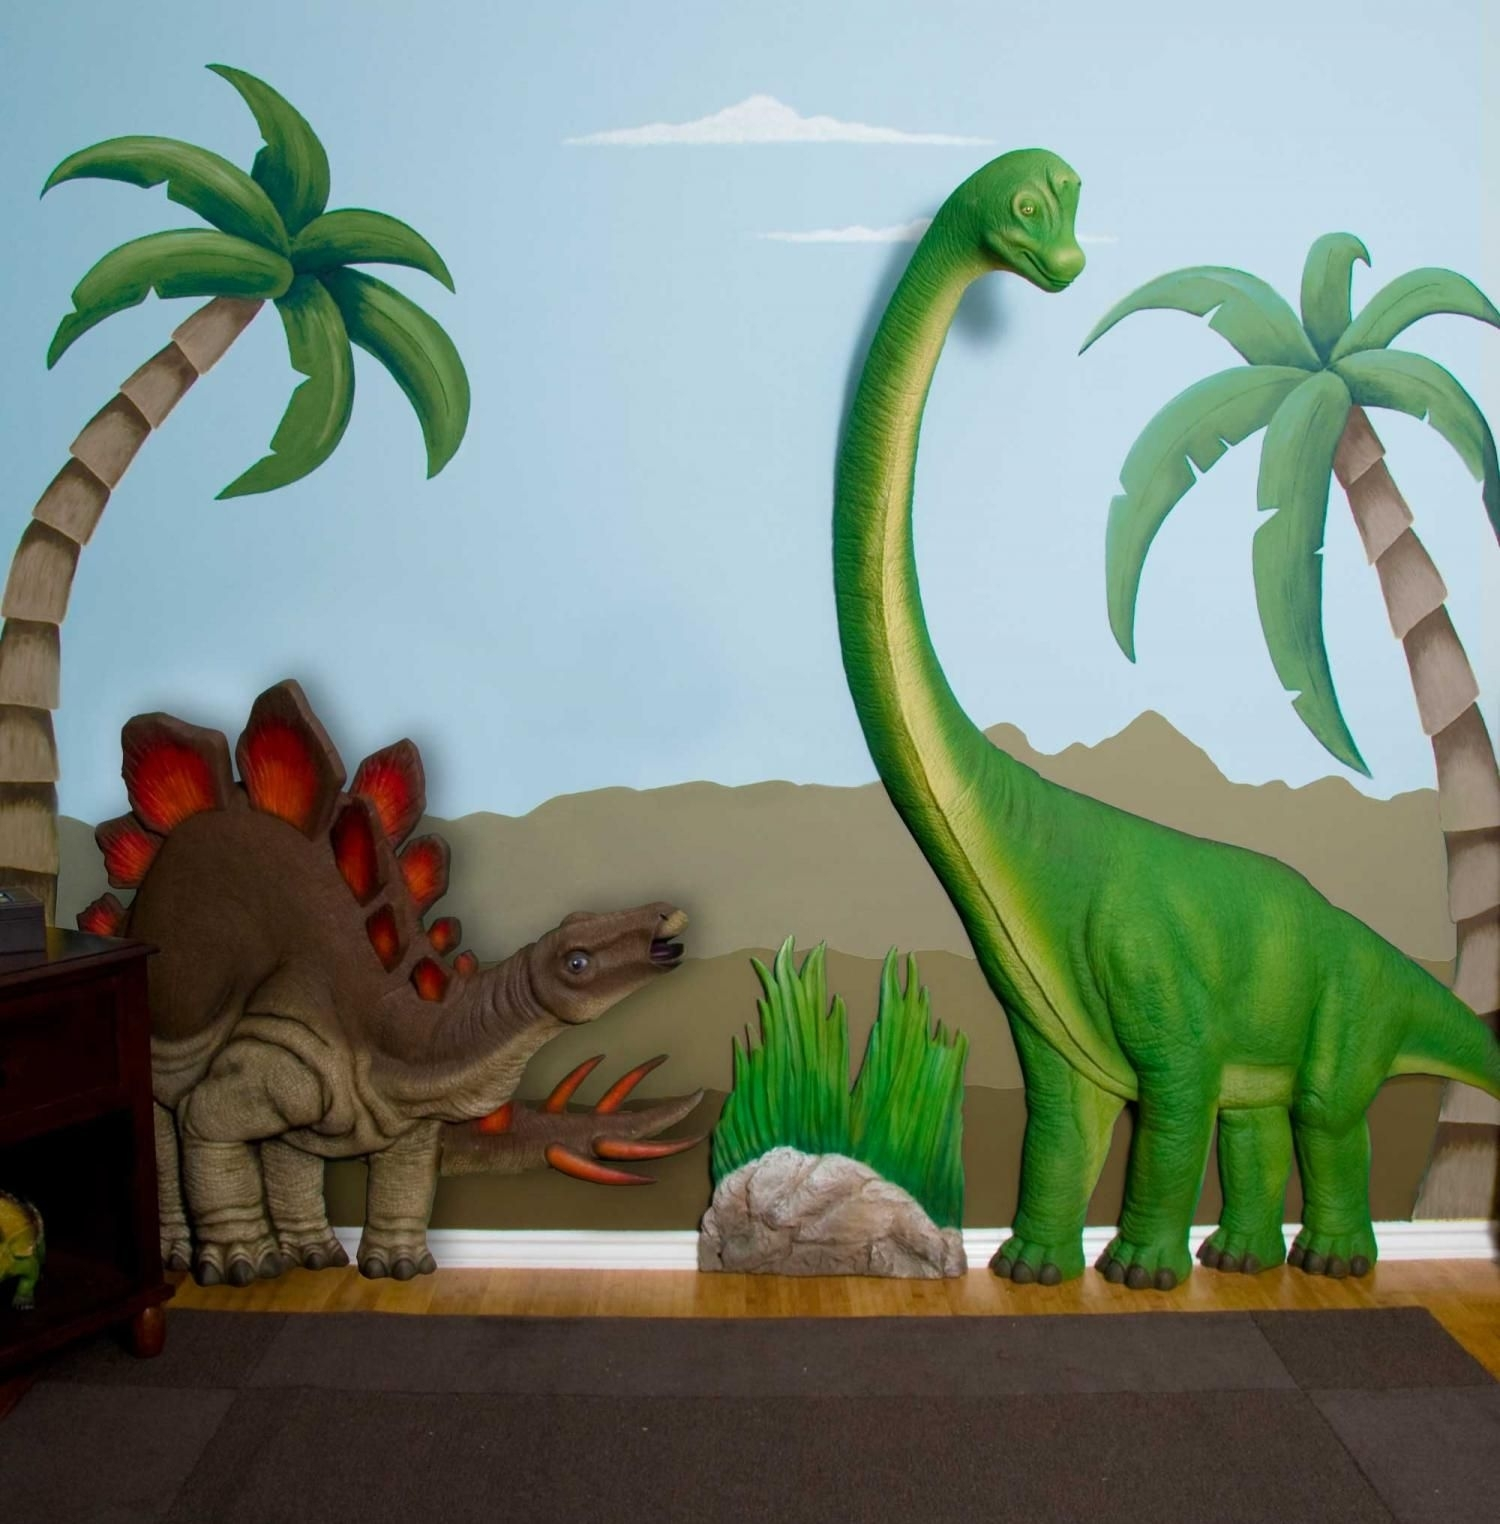 Love This!! Wonder If I Have A Sponsor Who Wants To Gift This To The Pertaining To Latest Dinosaur Wall Art (View 6 of 20)